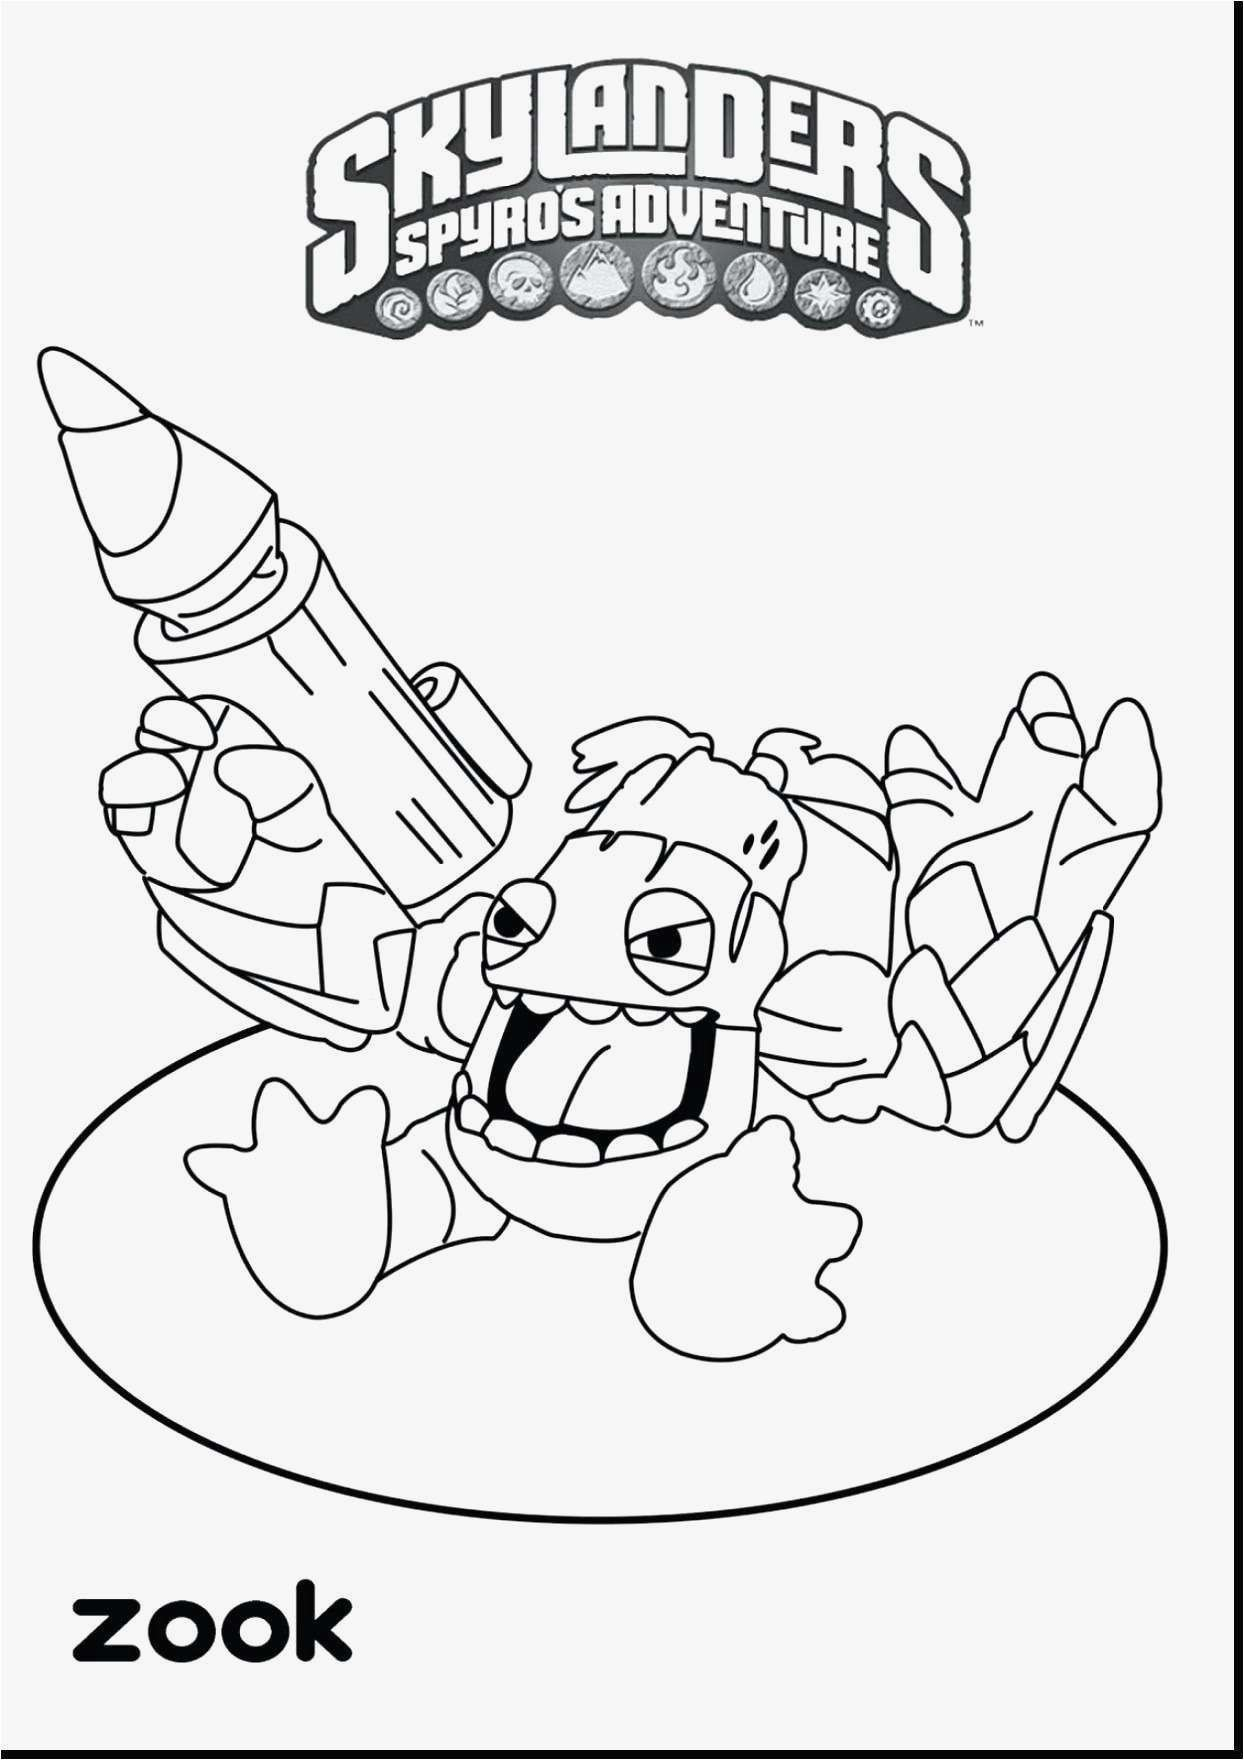 printable coloring pages of wolves Collection-Best Cool Coloring Page Inspirational Witch Coloring Pages New Crayola Pages 0d Coloring Page 20-p